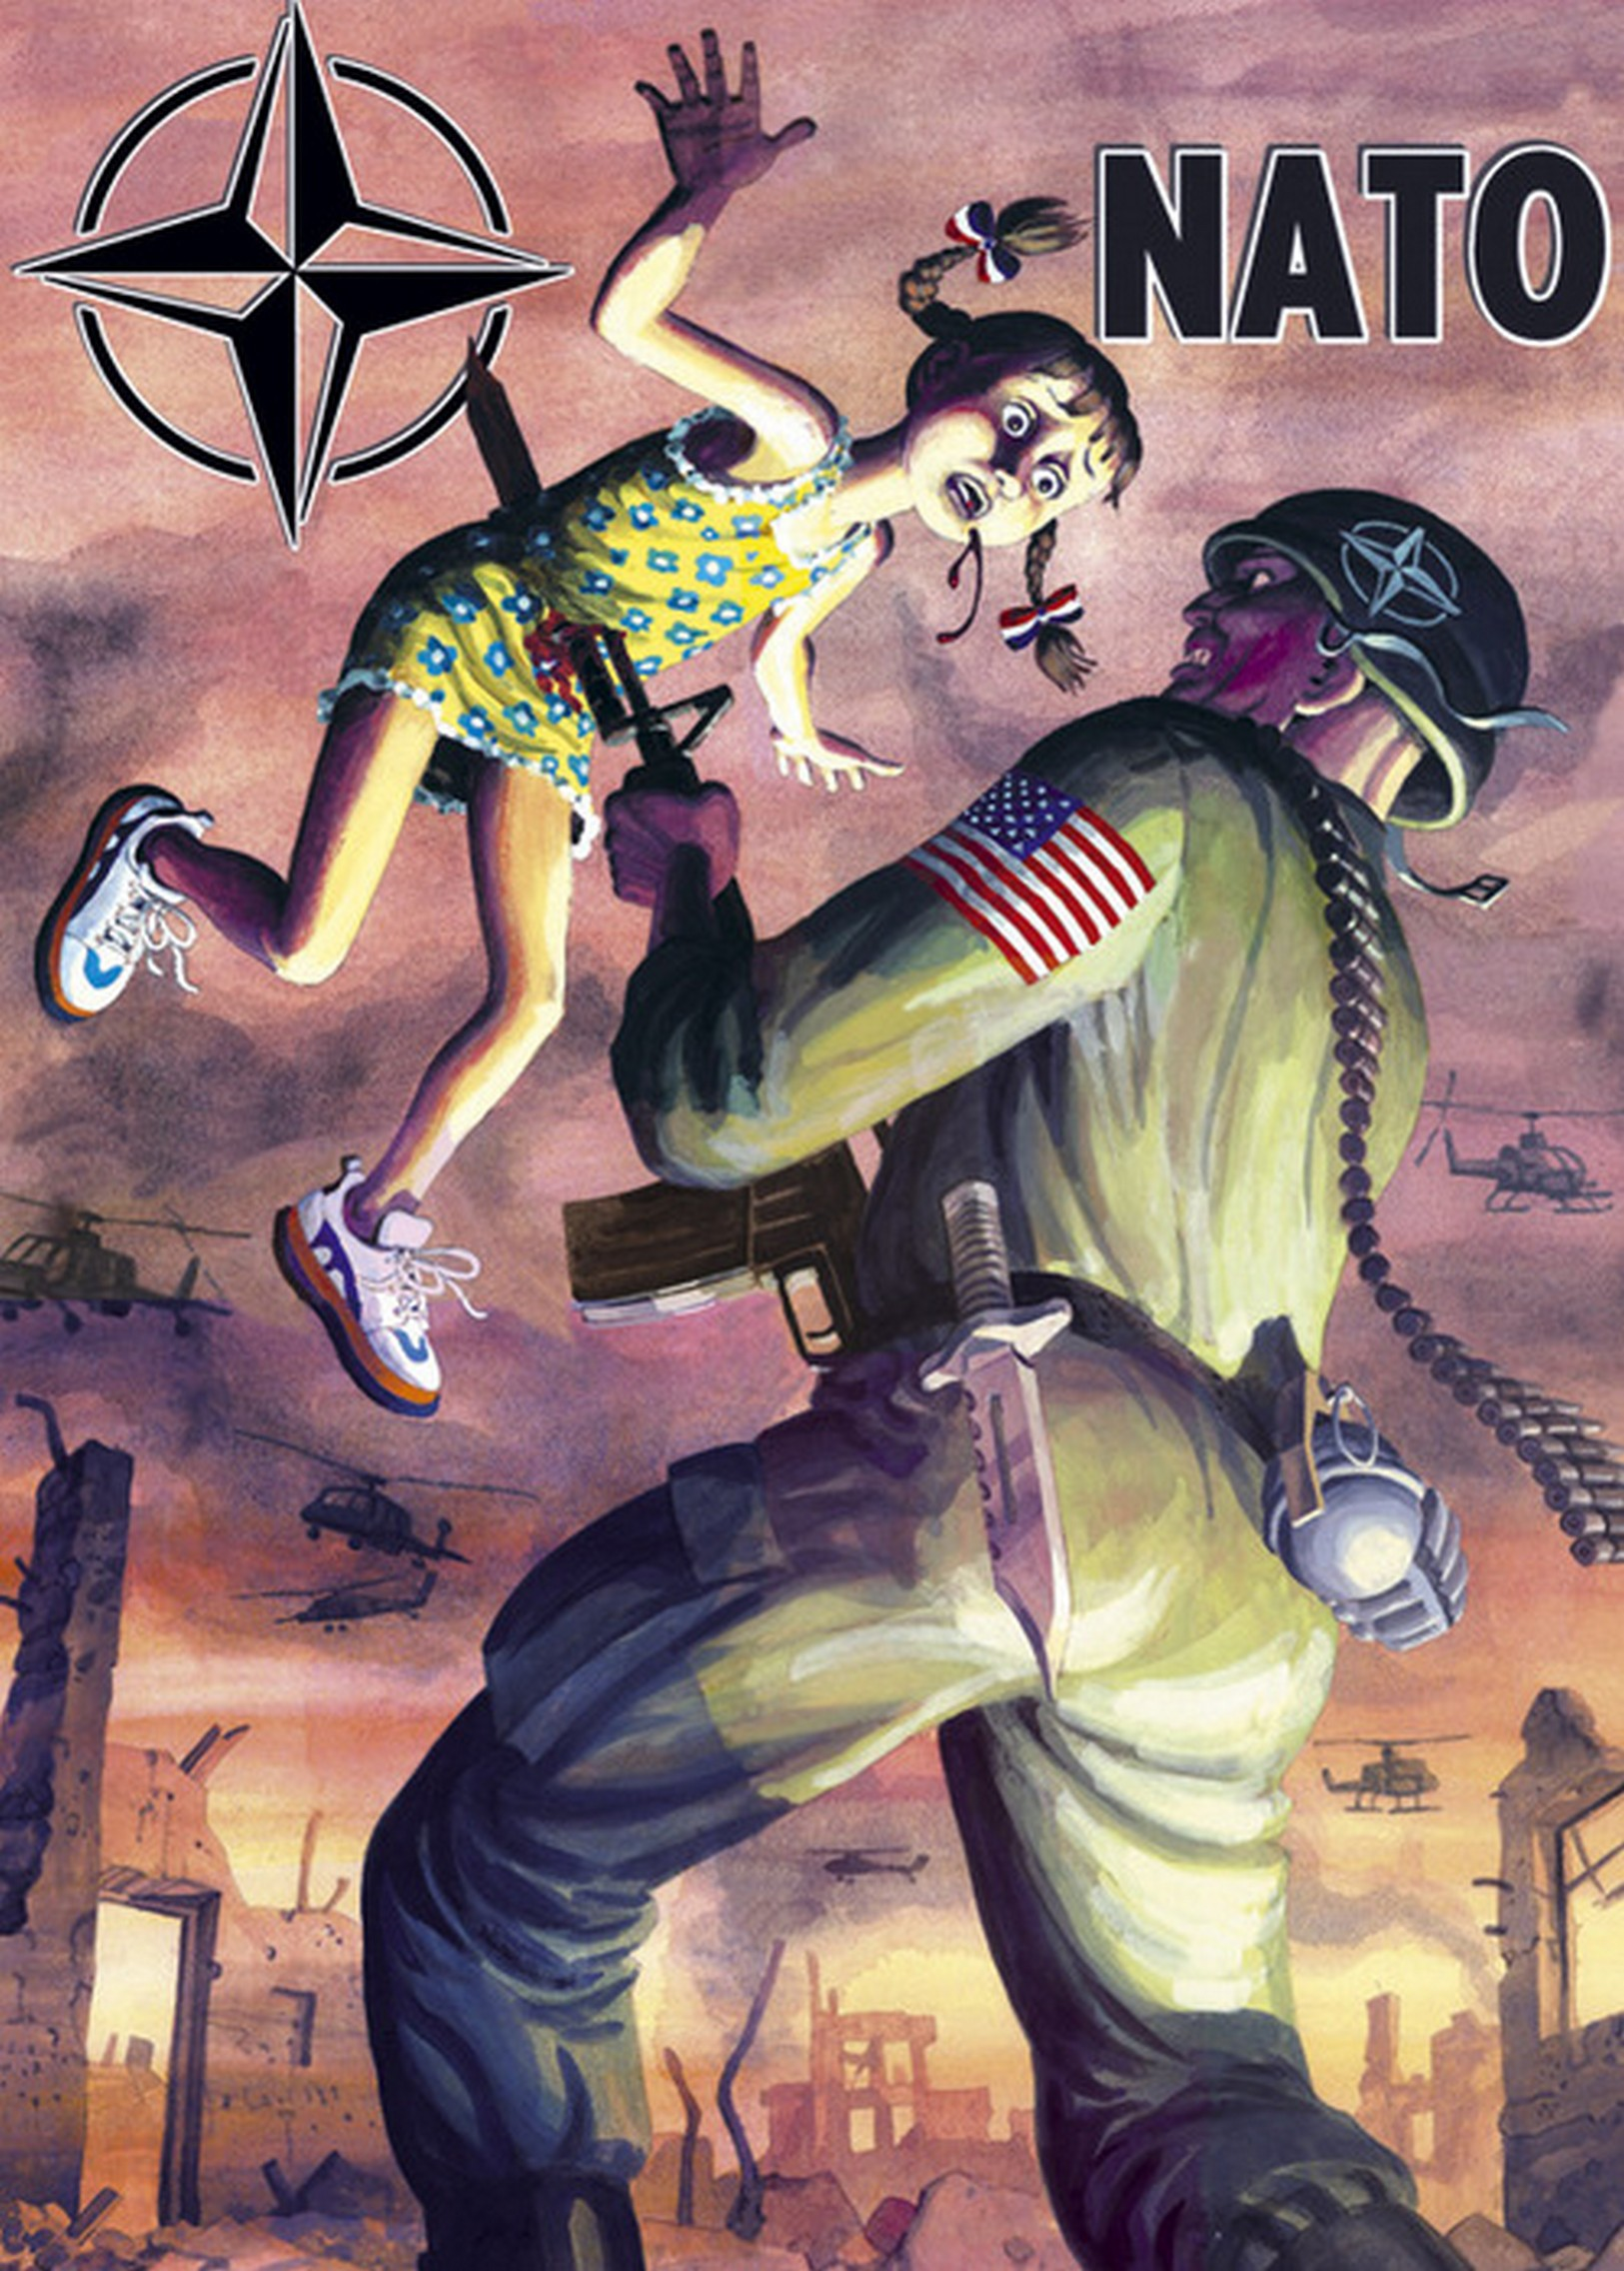 Serbian-poster-used-during-the-NATO-bombing-of-1999.The-girl-represents-Yugoslavia-as-shown-by-her-ribbons-being-in-the-color-of-the-Yugoslavian-flag.